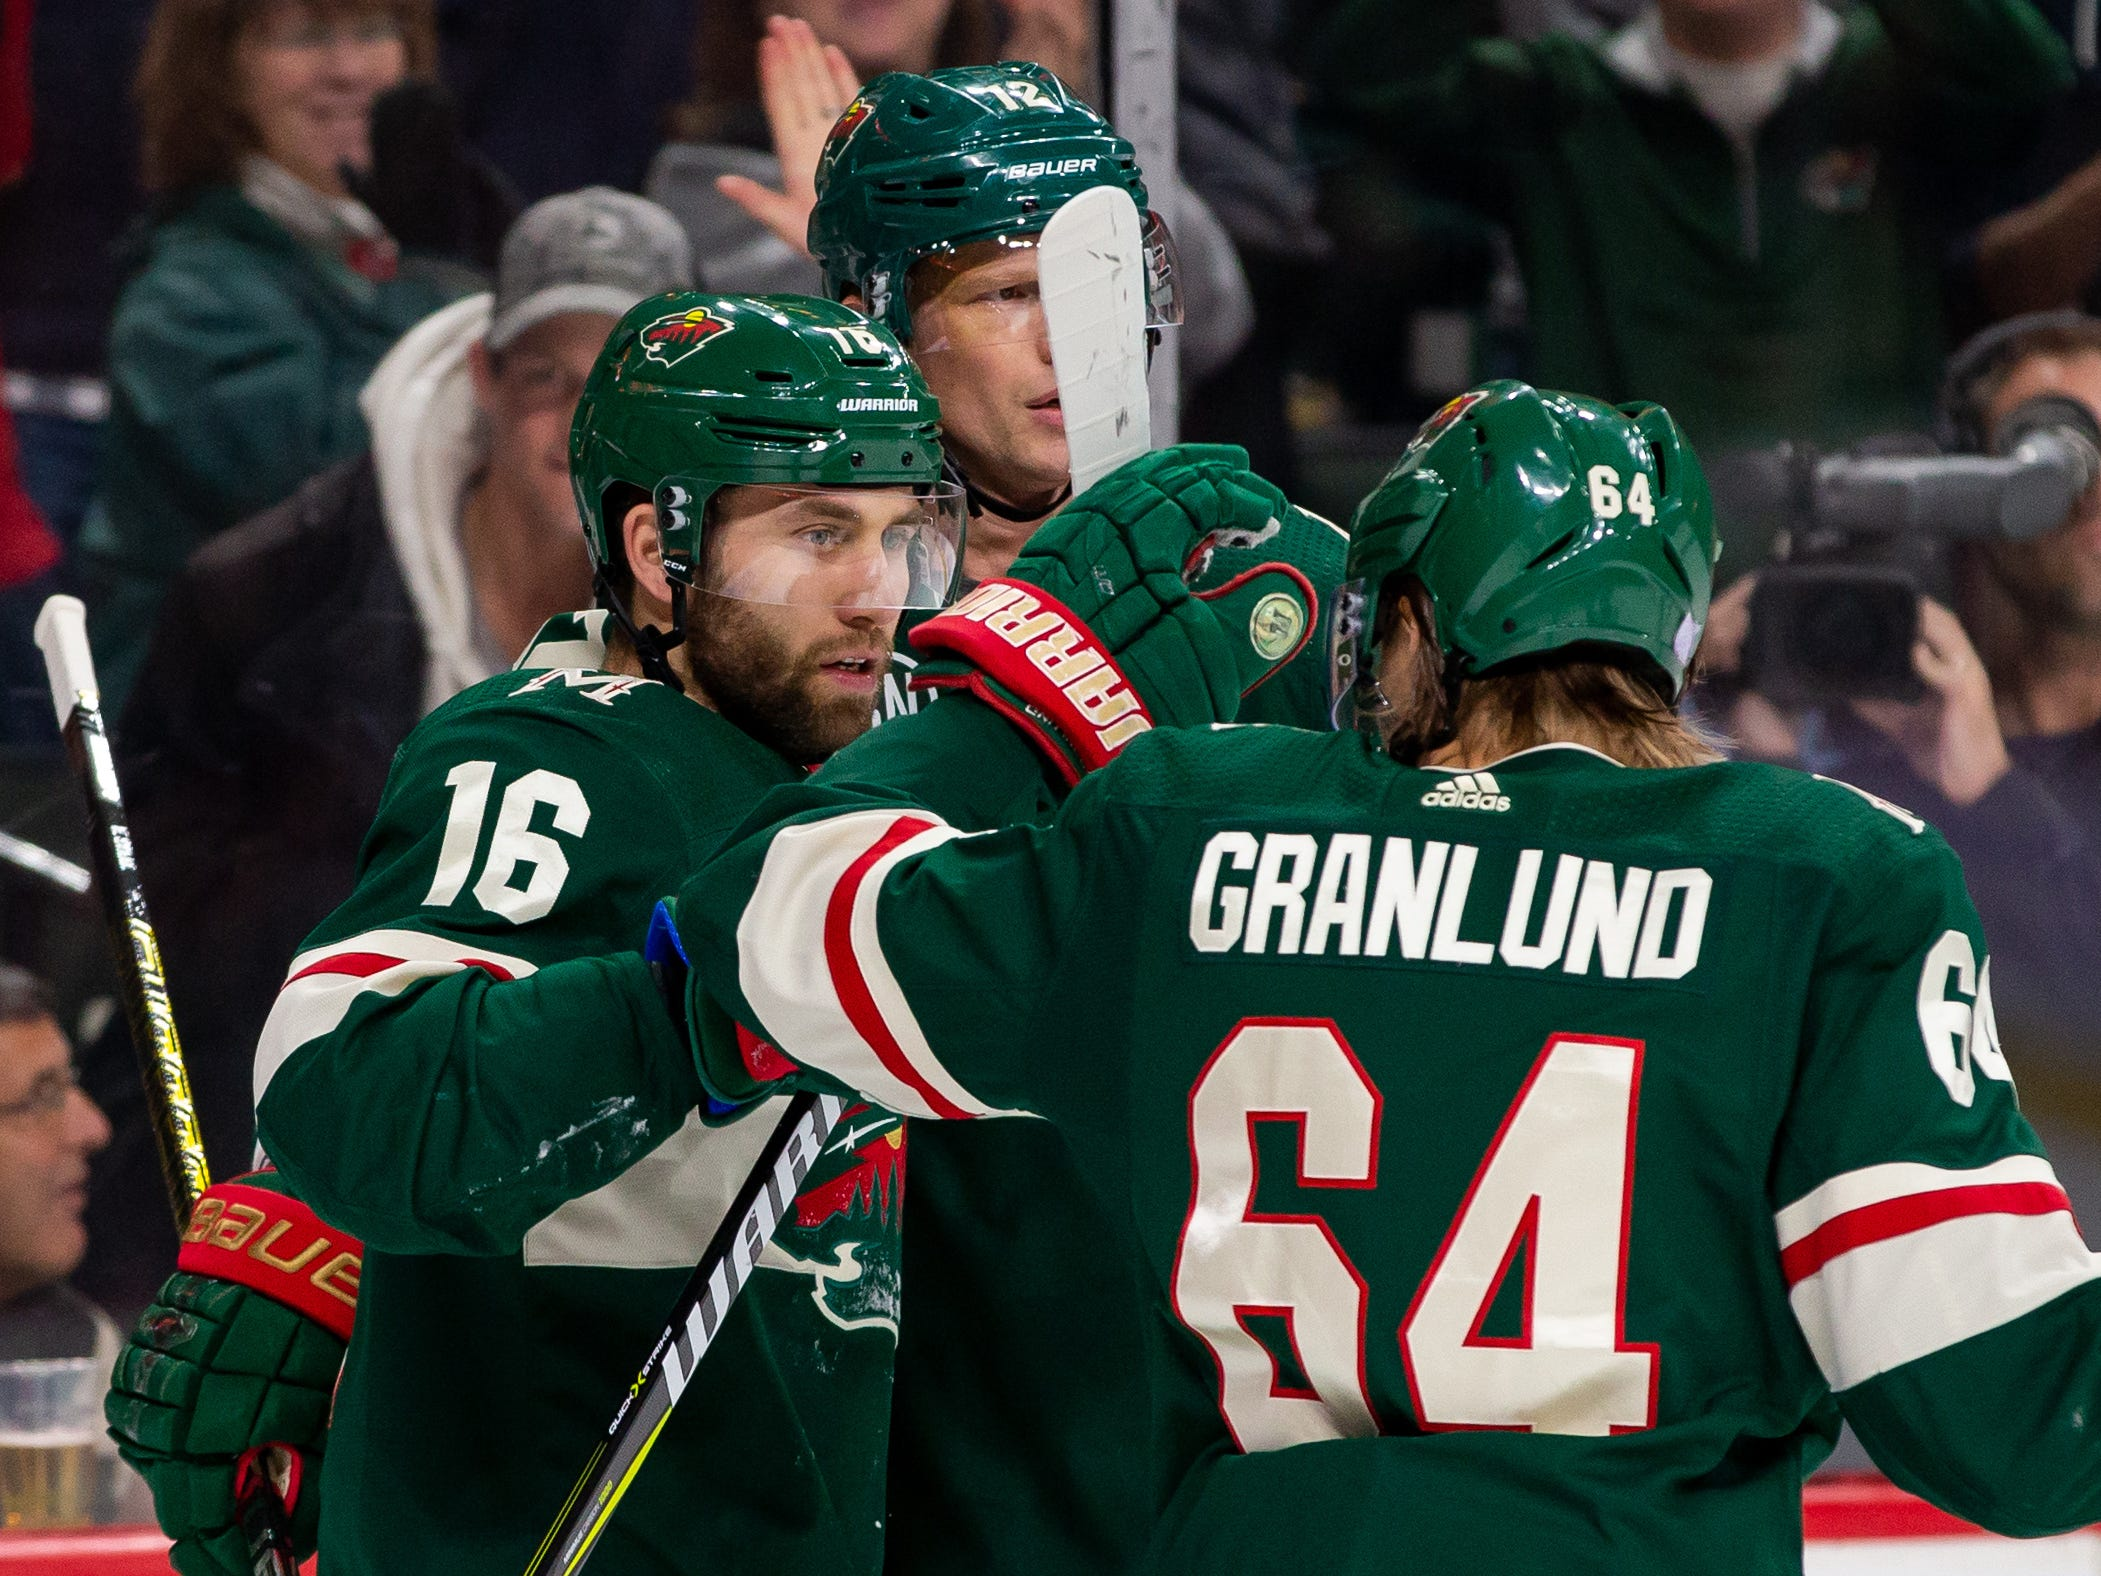 Nov 27, 2018; Saint Paul, MN, USA; Minnesota Wild forward Jason Zucker (16) celebrates his goal in the second period against Phoenix Coyotes  at Xcel Energy Center. Mandatory Credit: Brad Rempel-USA TODAY Sports